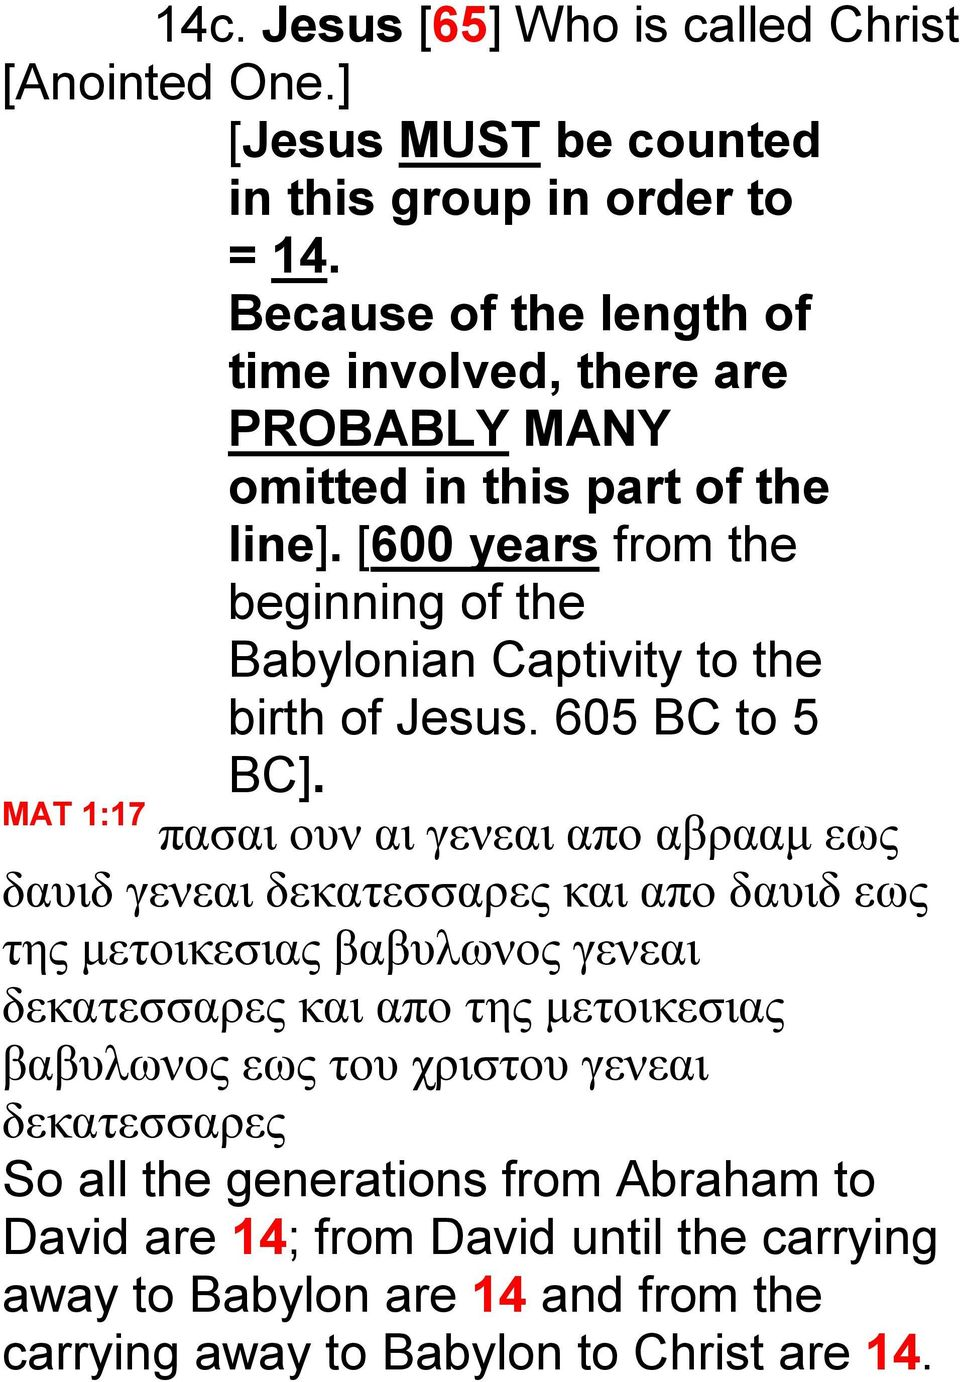 [600 years from the beginning of the Babylonian Captivity to the birth of Jesus. 605 BC to 5 BC].